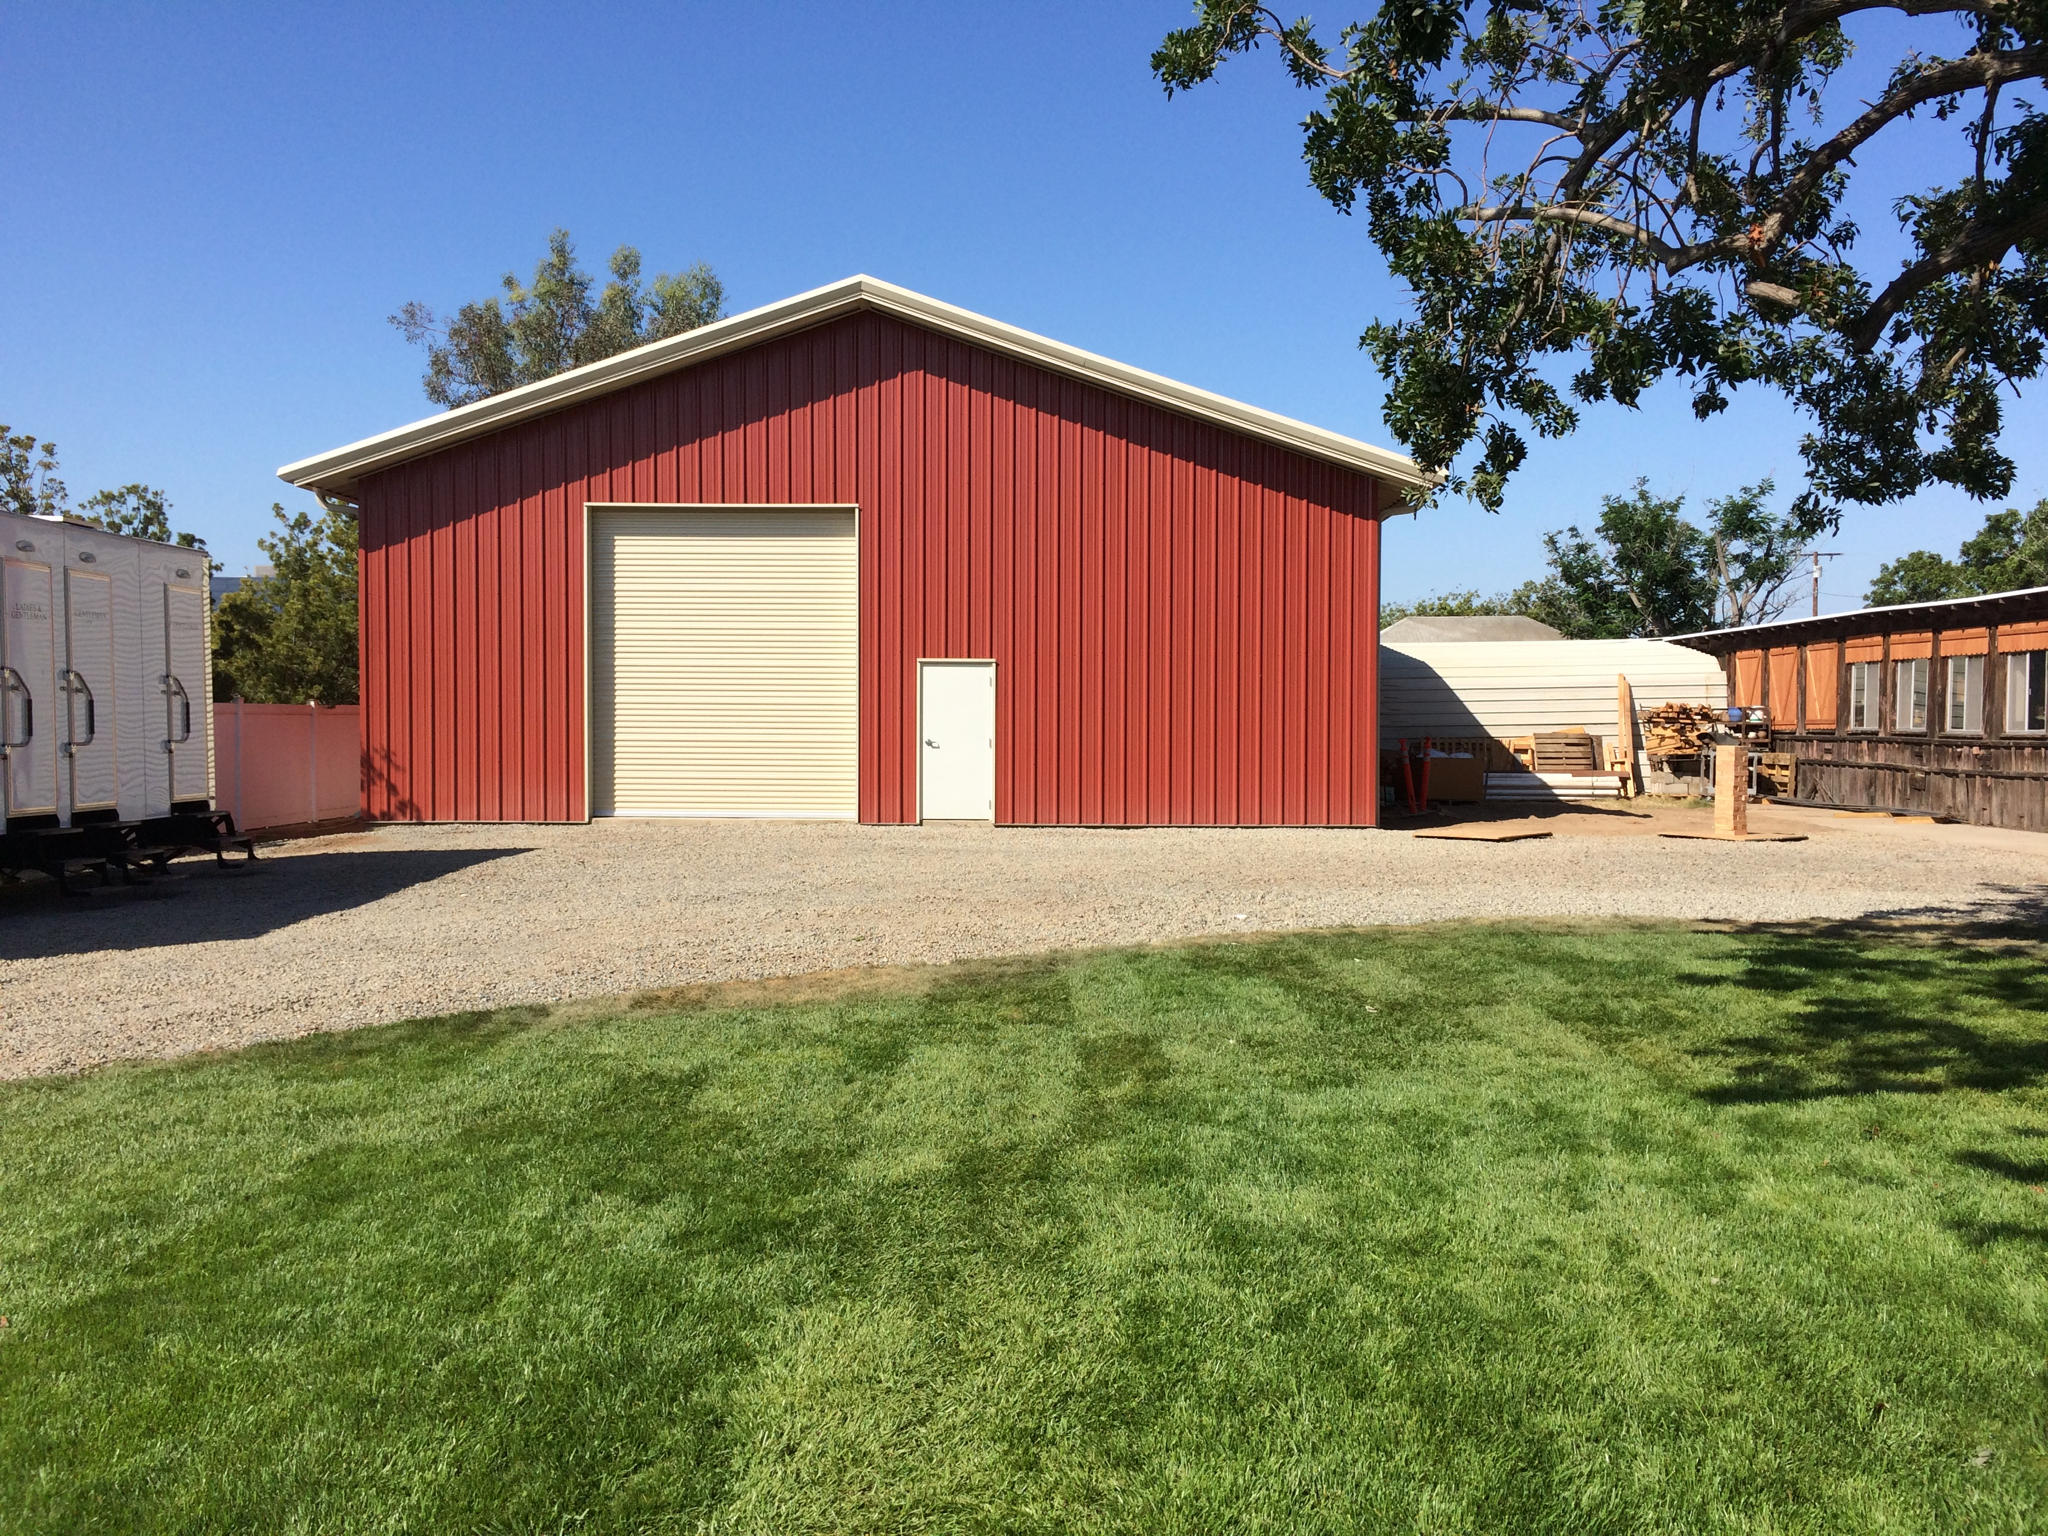 Pre-engineered Metal Barn / Garage Building erected in Newport Beach, CA by Pascal Steel